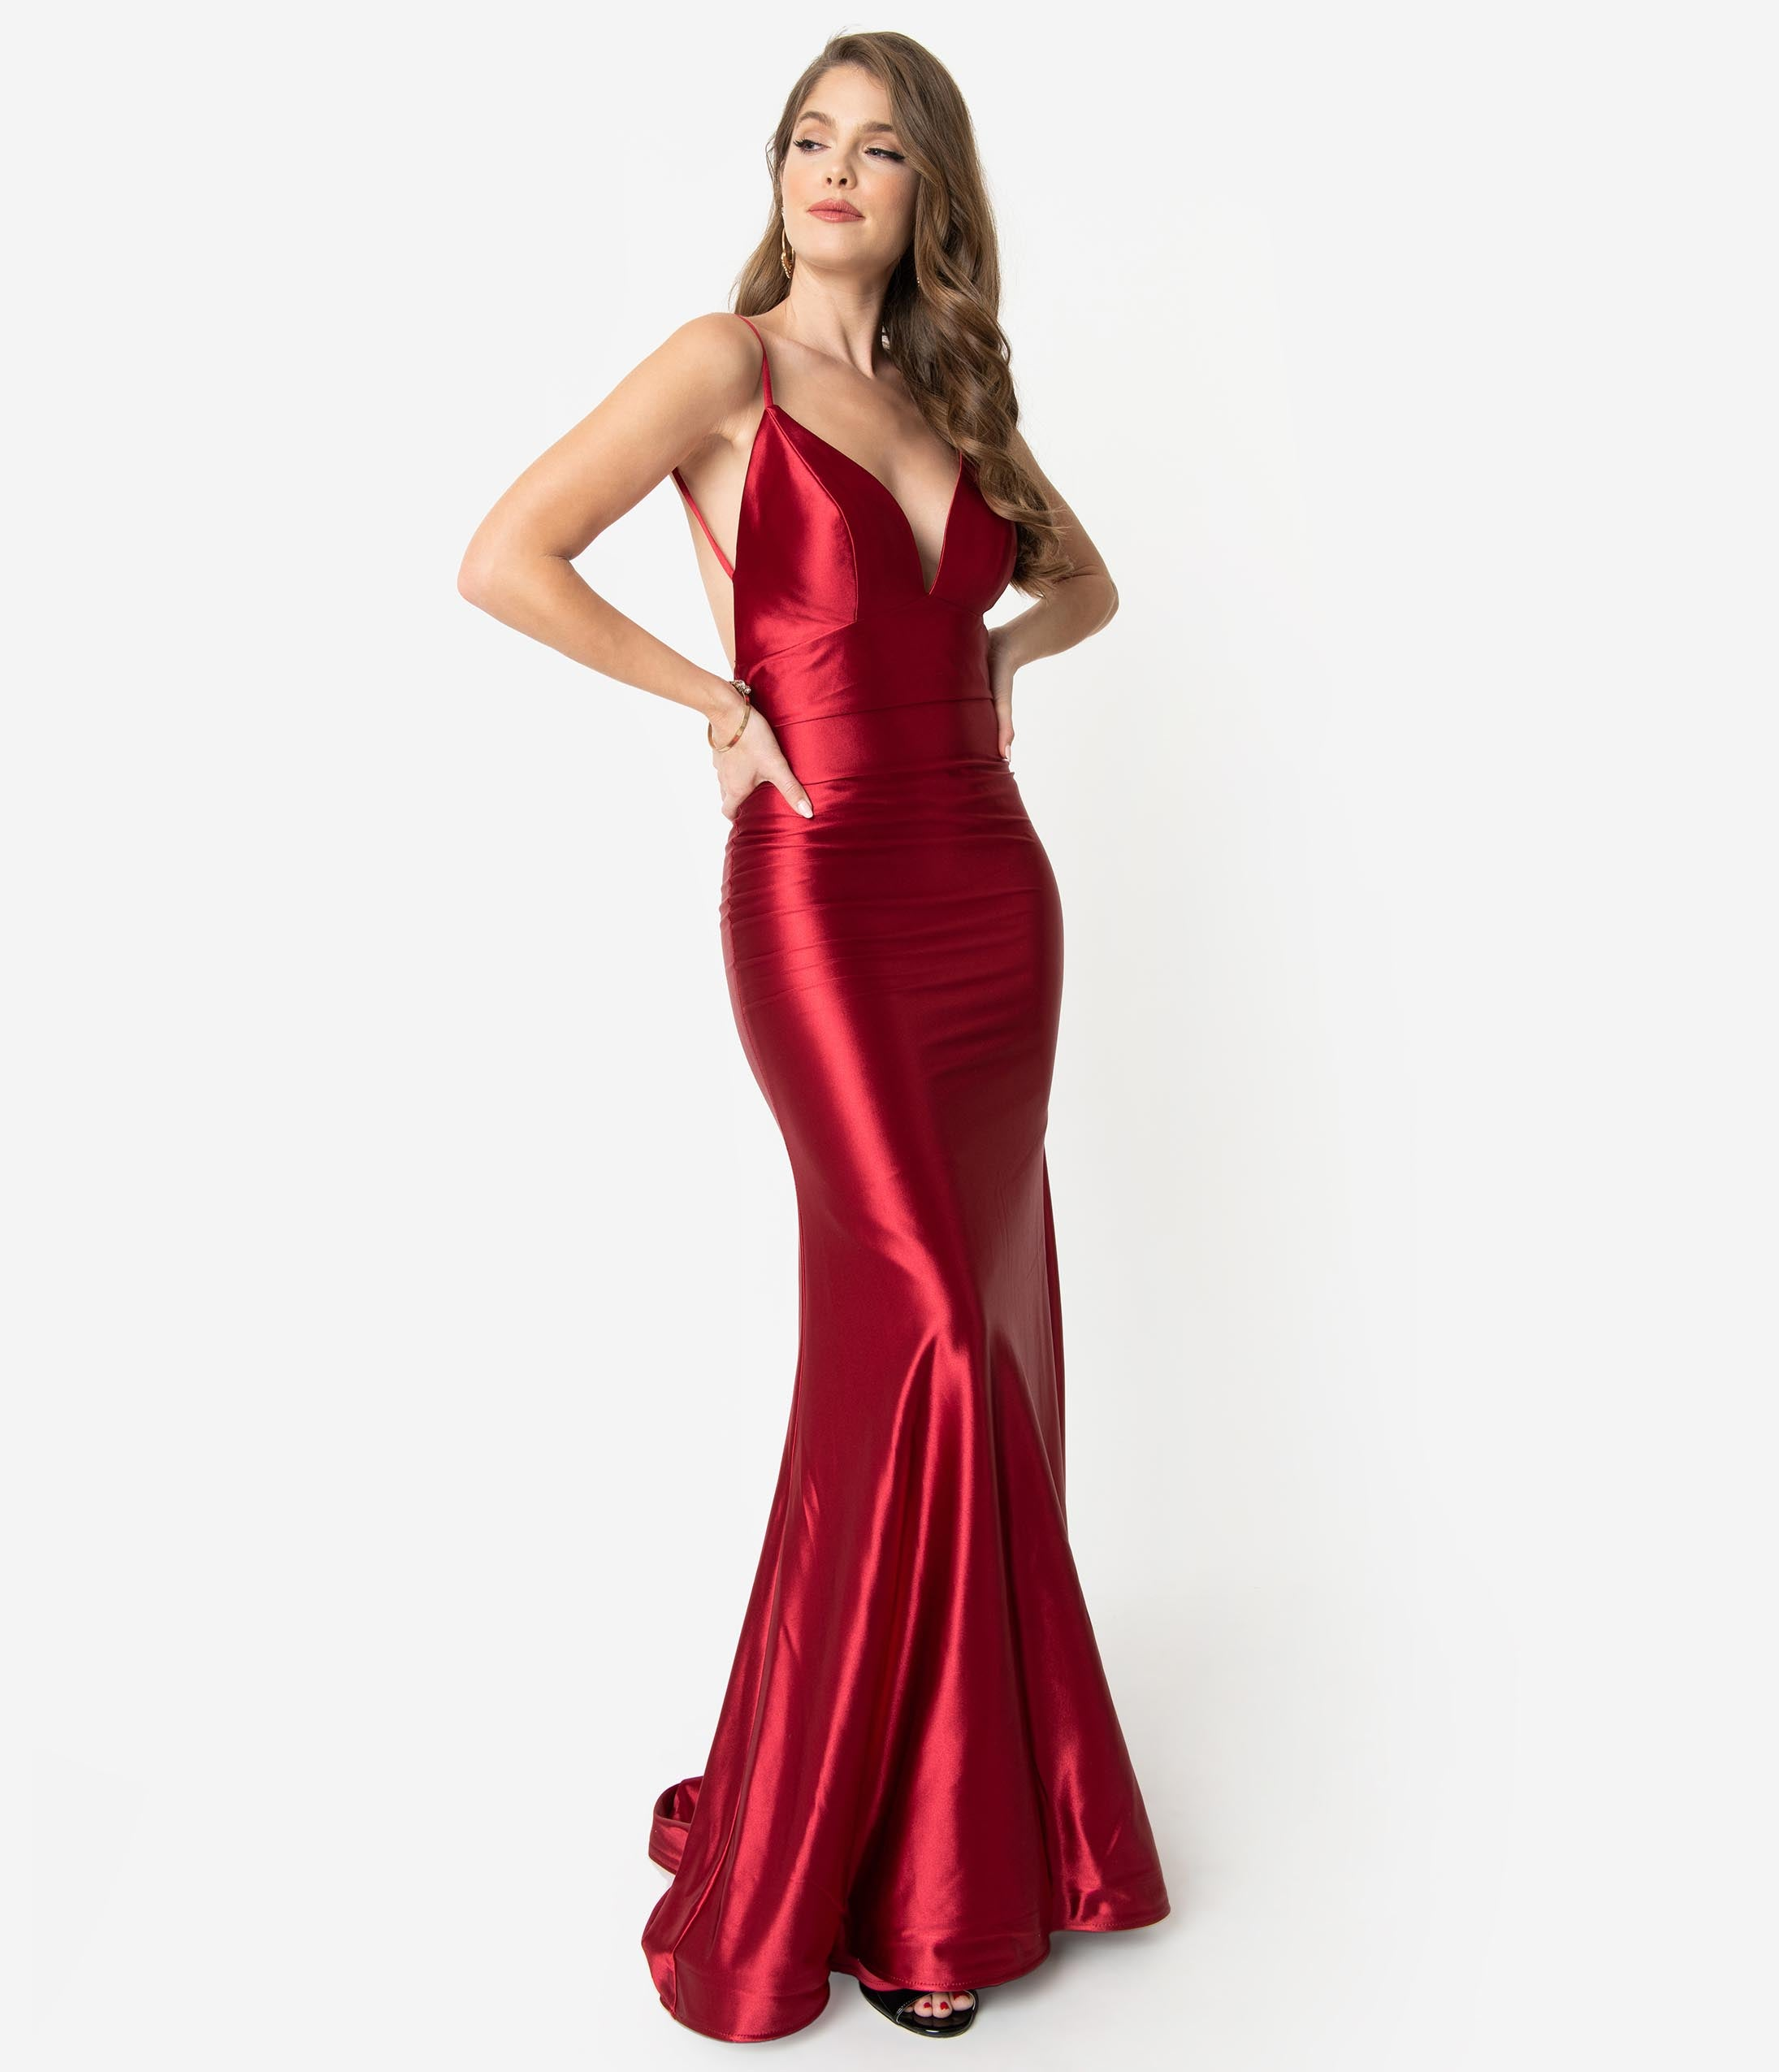 Vintage Evening Dresses and Formal Evening Gowns Boysenberry Red Satin Sexy Sleeveless Open Back Fitted Long Dress $174.00 AT vintagedancer.com